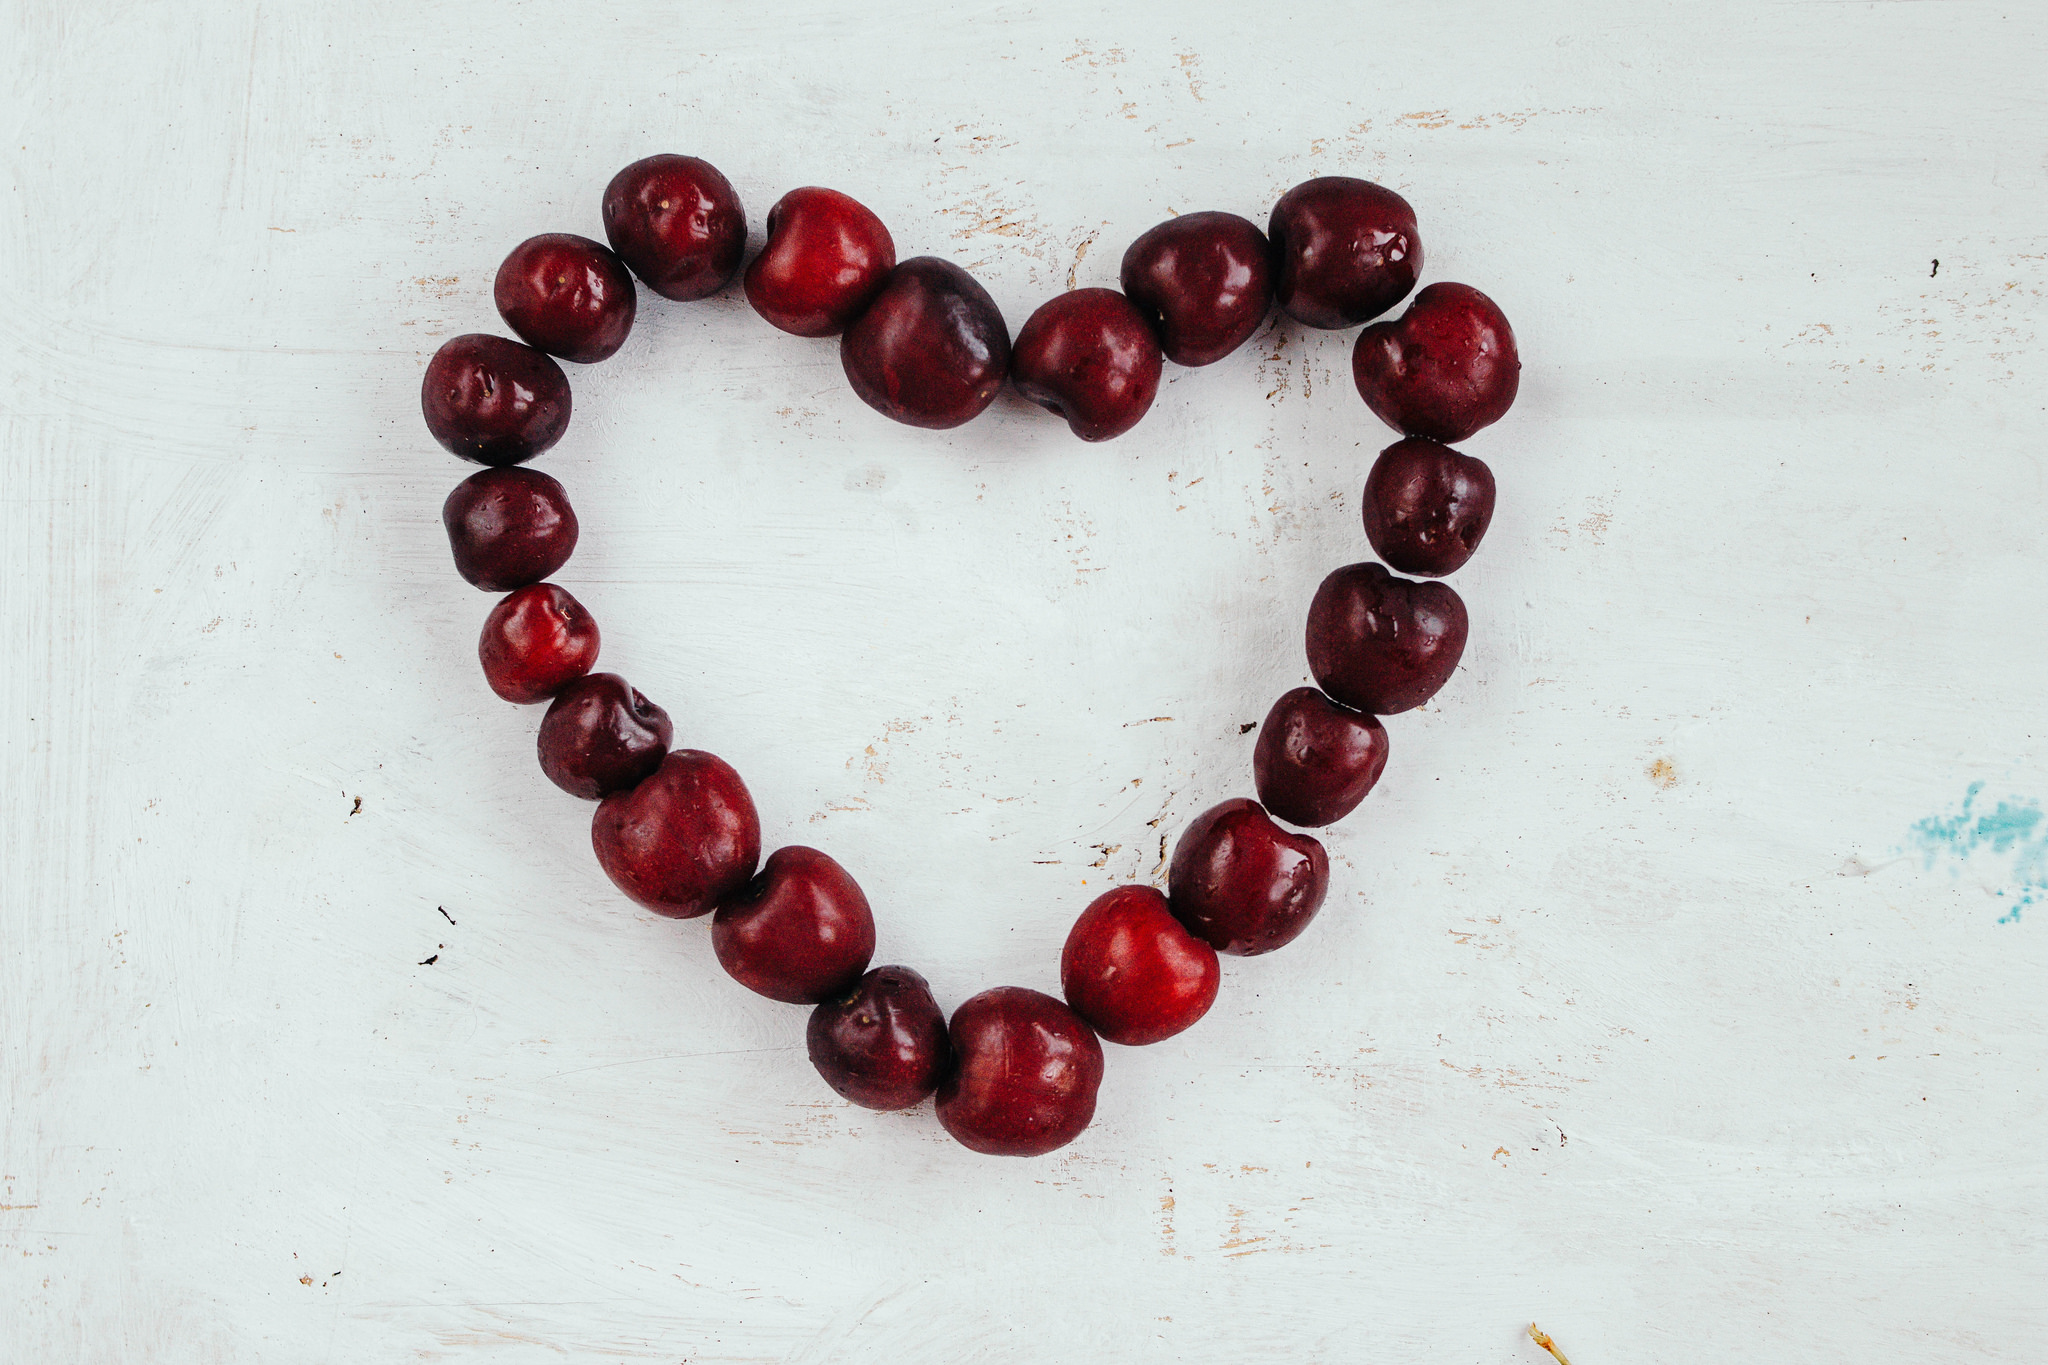 Heart made with cherries by Marco Verch